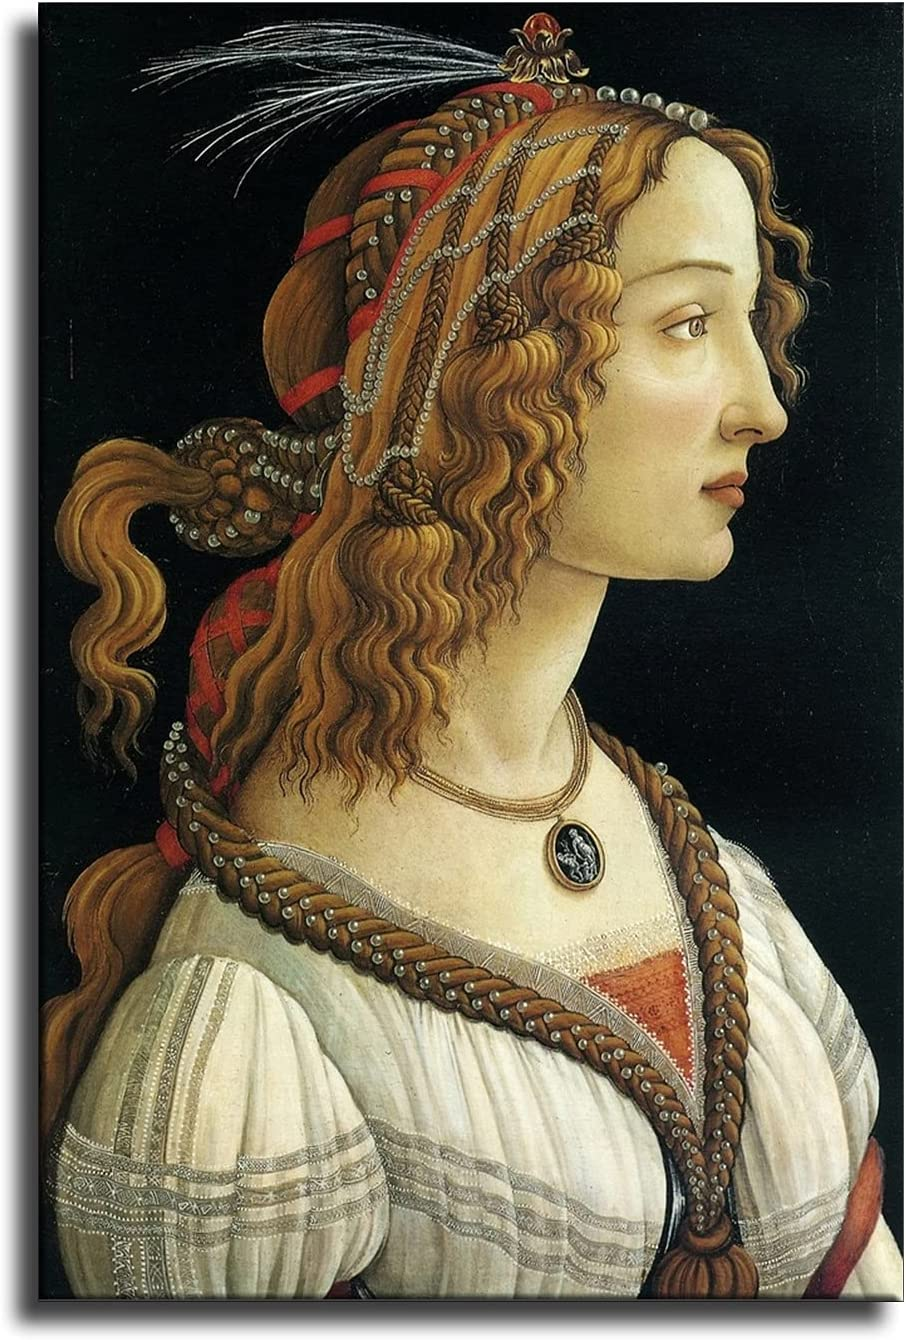 Posters Art Renaissance Classic Room Decor Wall Decor Paintings (Unframed,20x30inch)